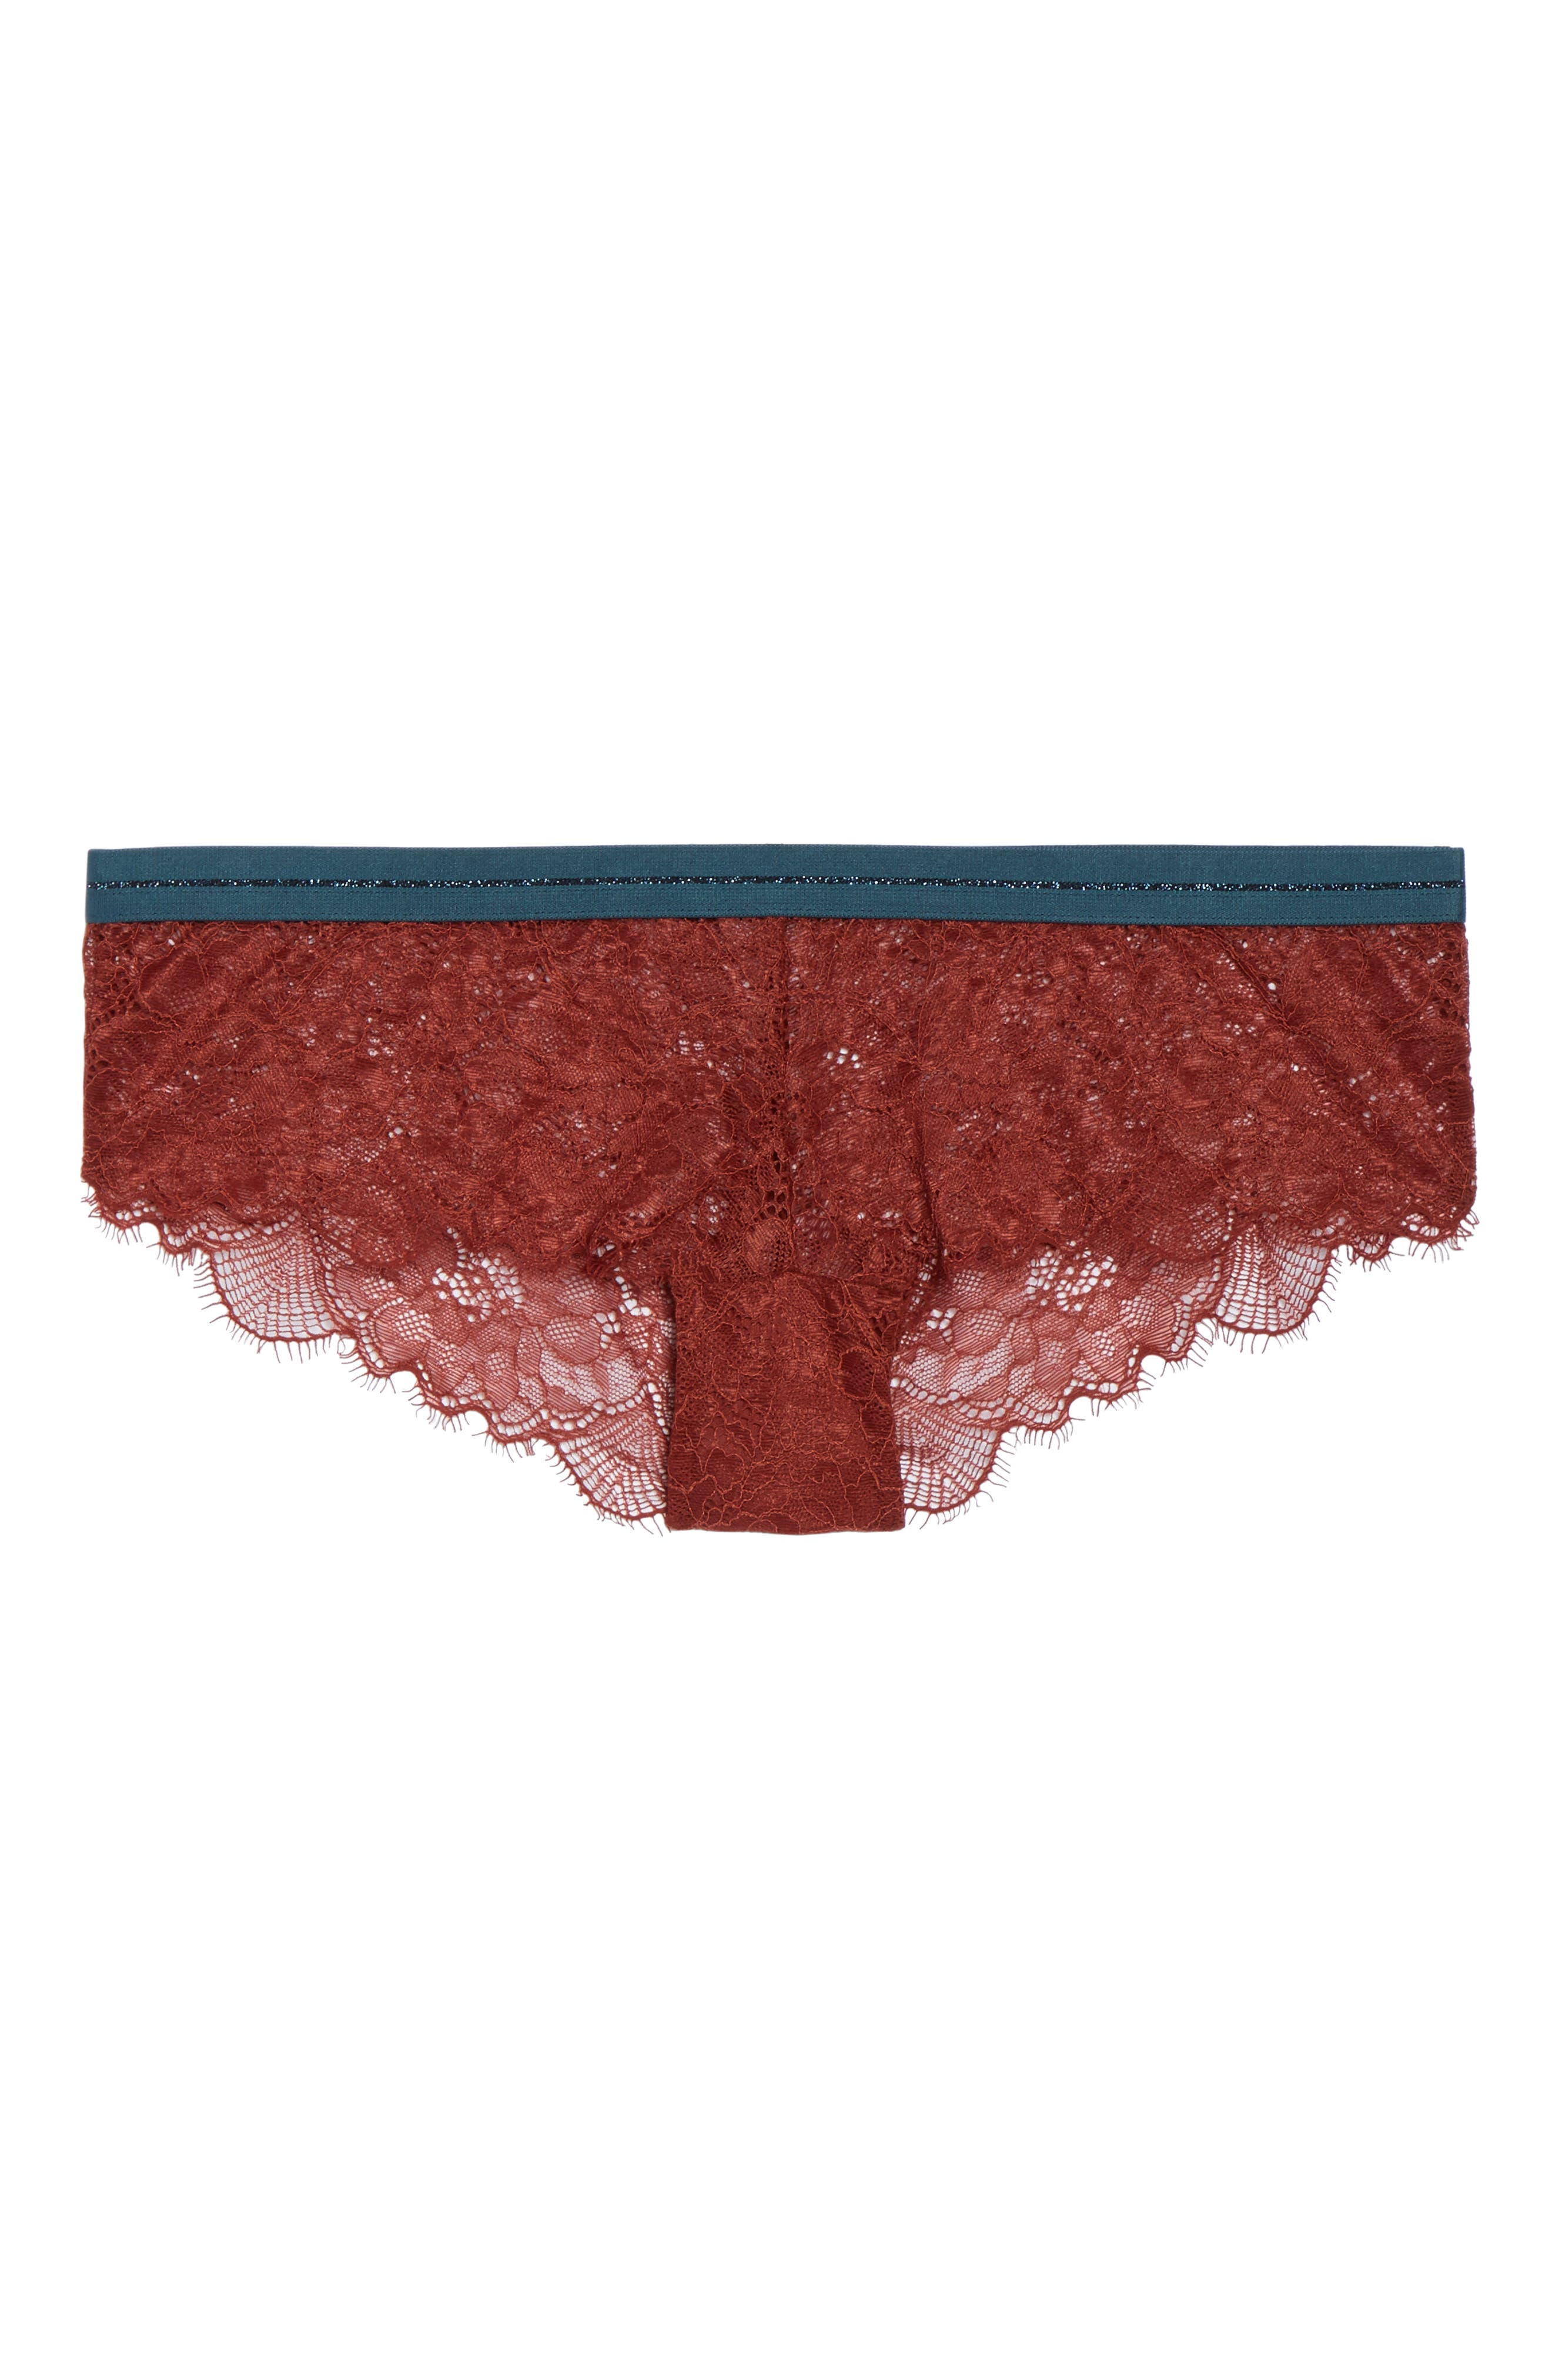 Dragonfly Lace Panties,                             Alternate thumbnail 5, color,                             200